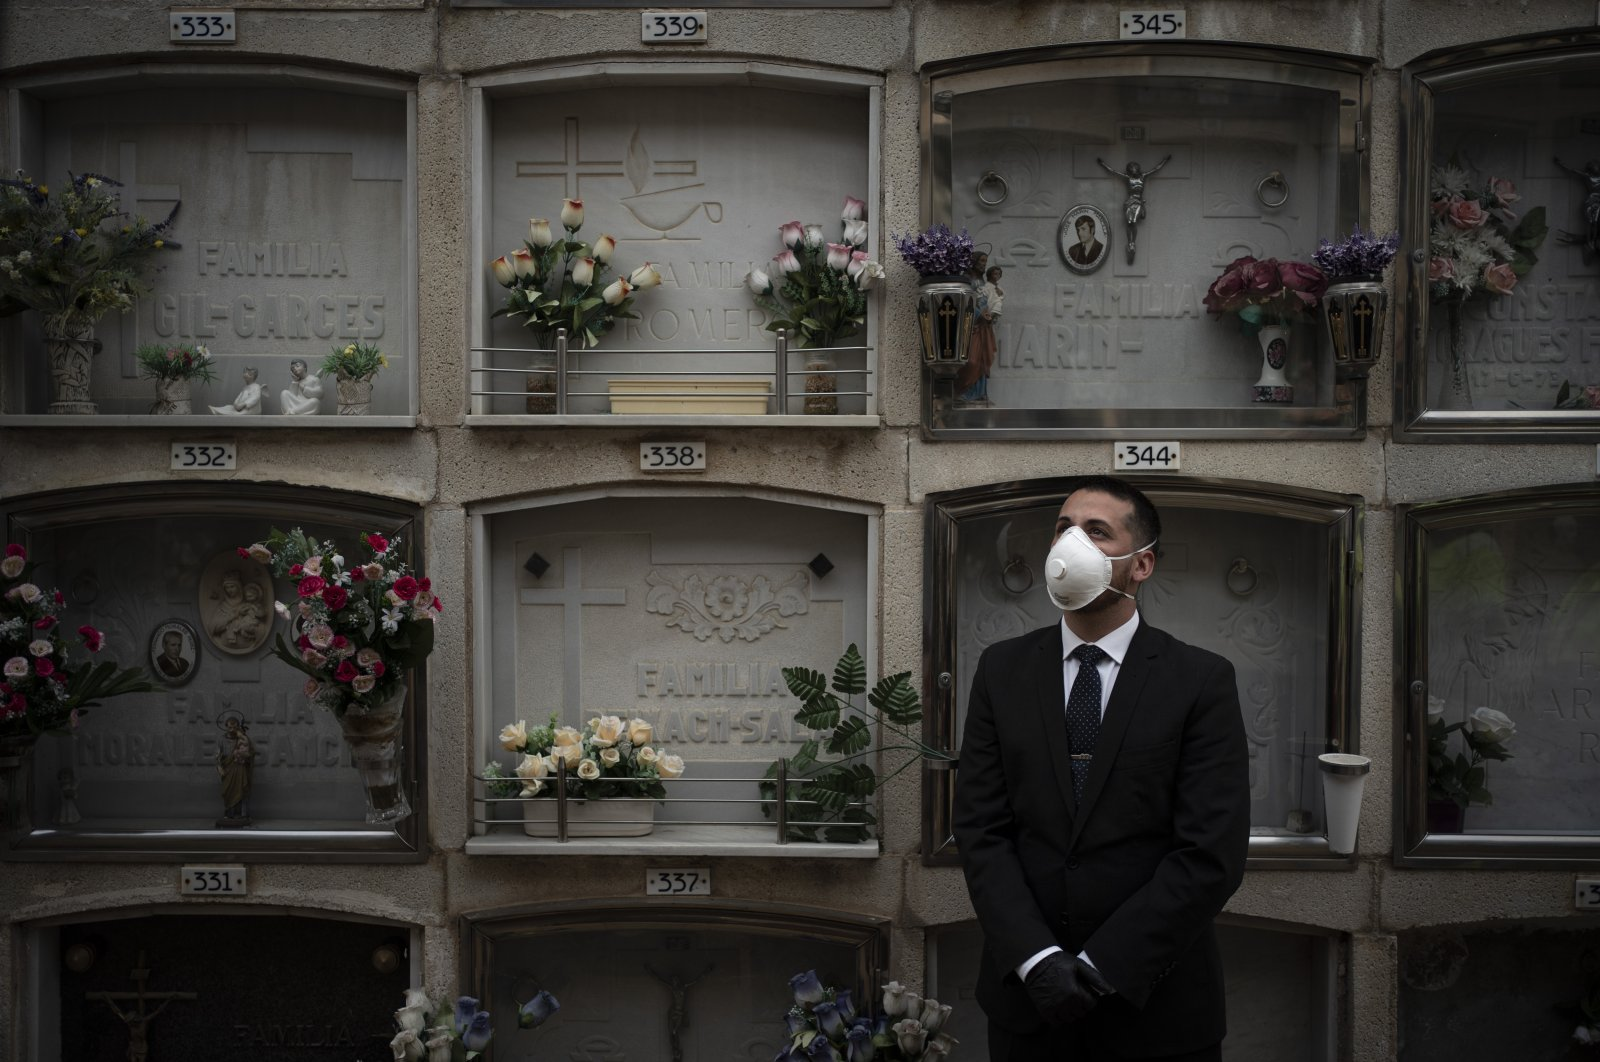 A funeral home worker wearing a face mask watches as the body of an unidentified person who died of unknown causes is placed into a niche at the Girona Cemetery in Girona, Spain, Friday, April 17, 2020. (AP Photo)